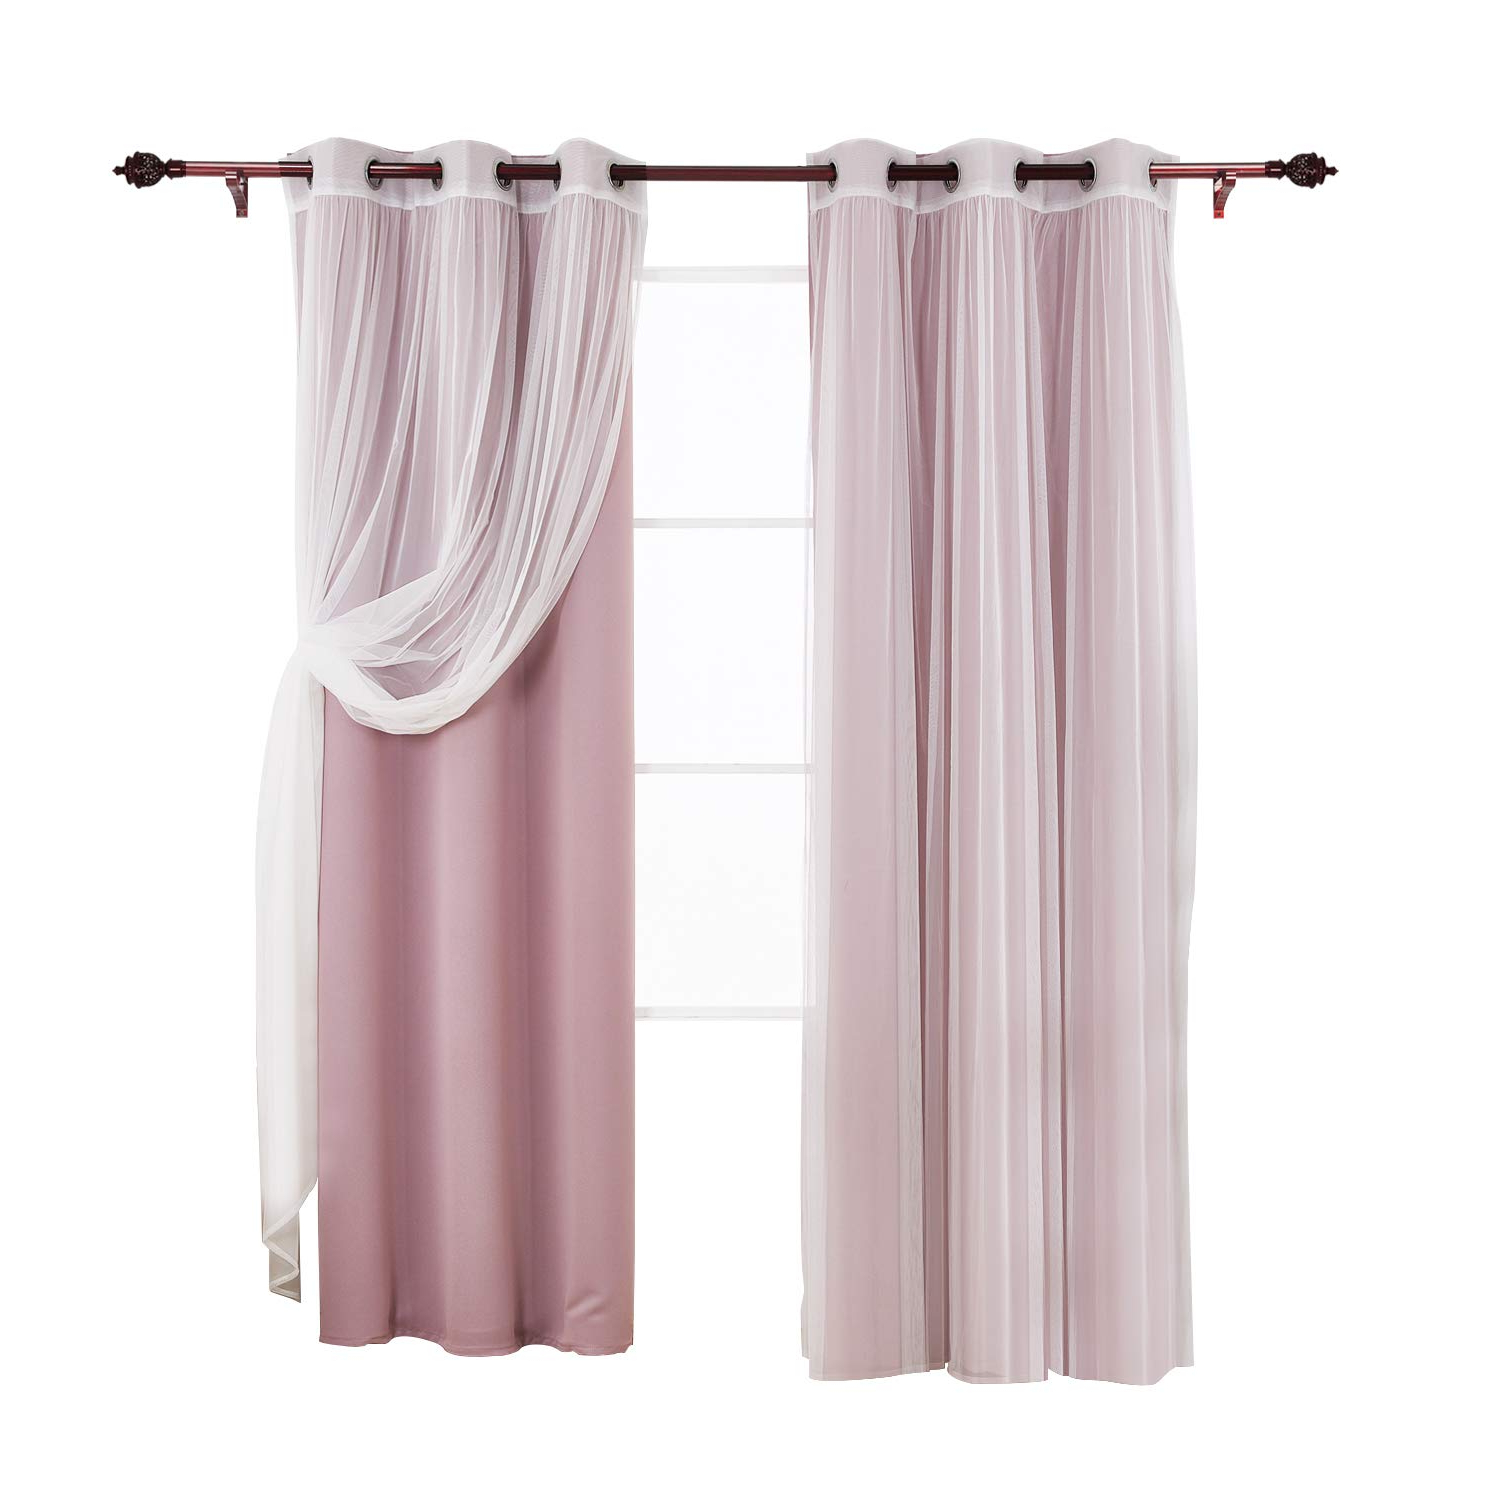 Well Liked Mix And Match Blackout Tulle Lace Sheer Curtain Panel Sets Inside Deconovo Mix And Match Curtain Set 2 Thermal Insulated Blackout Curtians Lavender And 2 Tulle Lace White Sheer Curtain Panels For Bedroom 4 Panels (View 17 of 20)